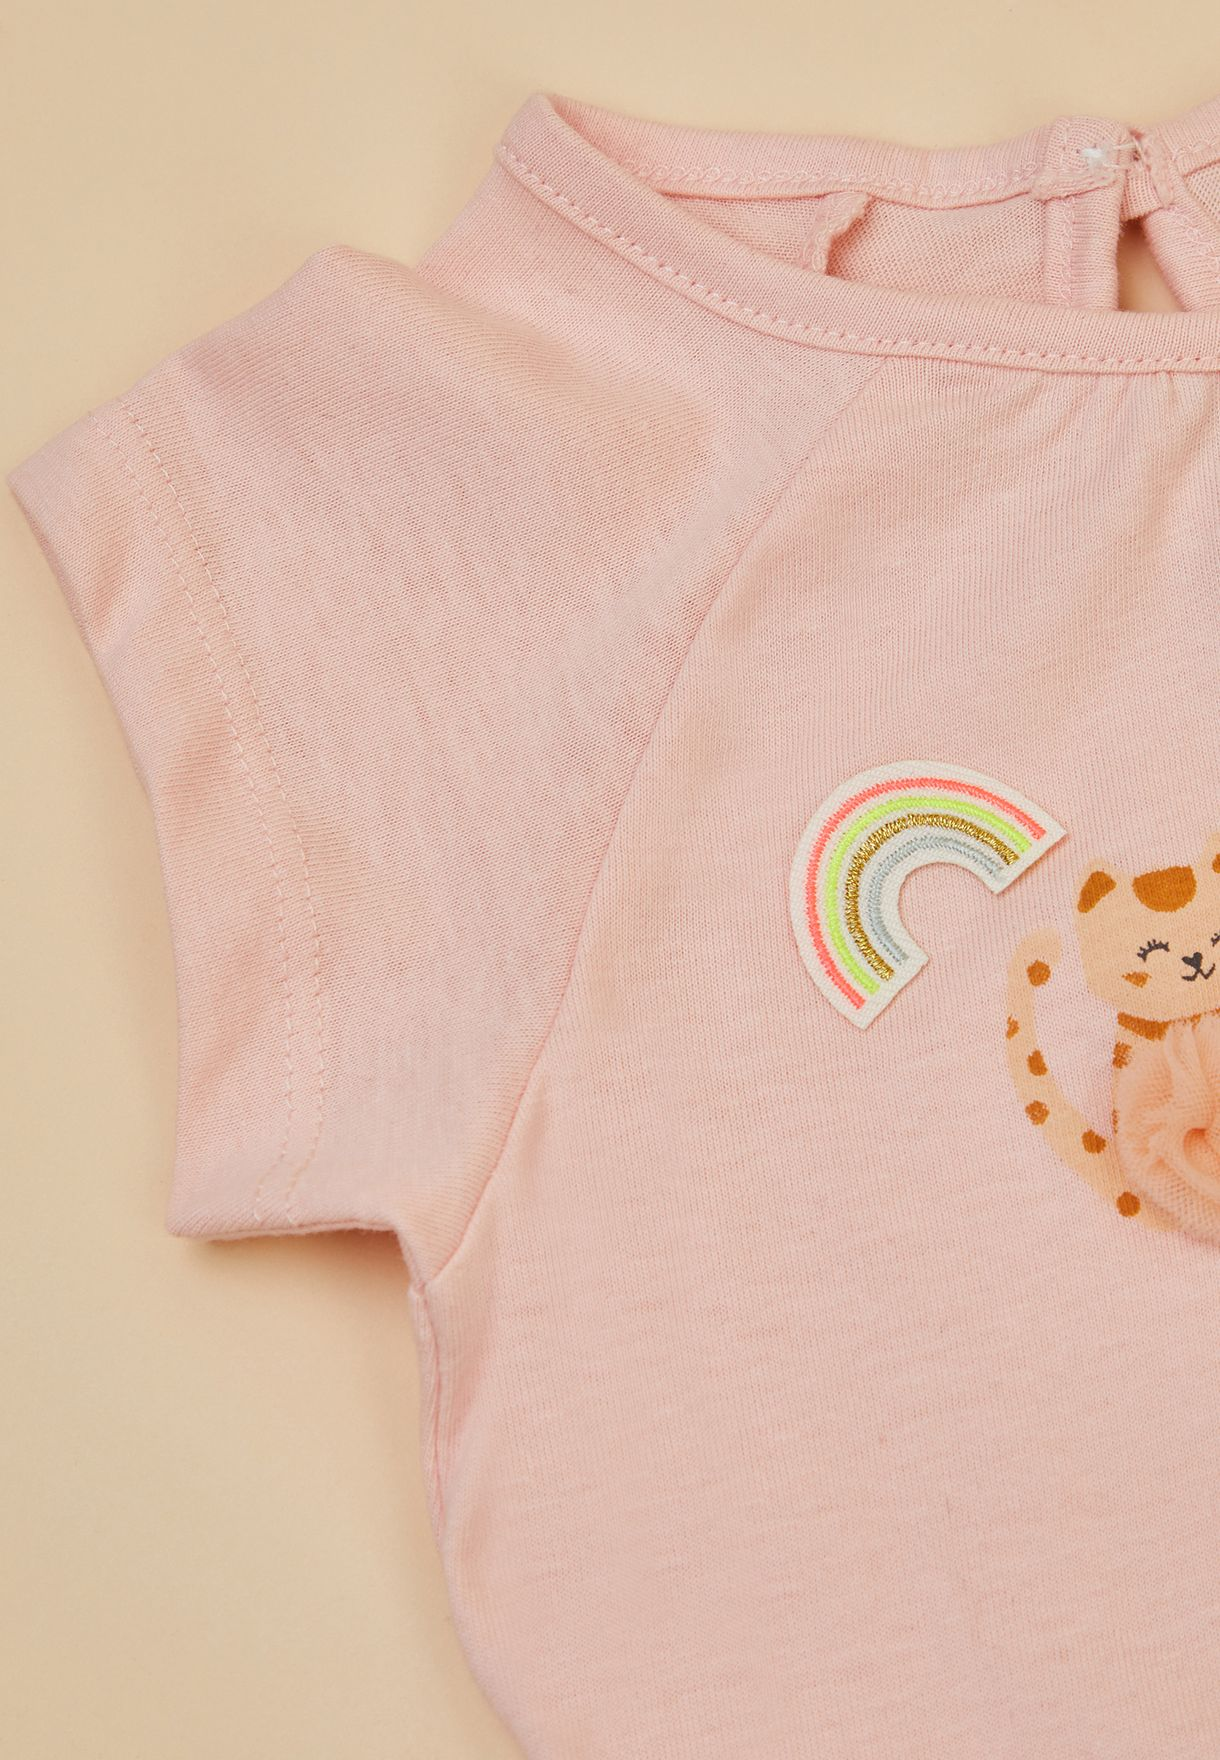 Kids Iron On Rainbow Patch